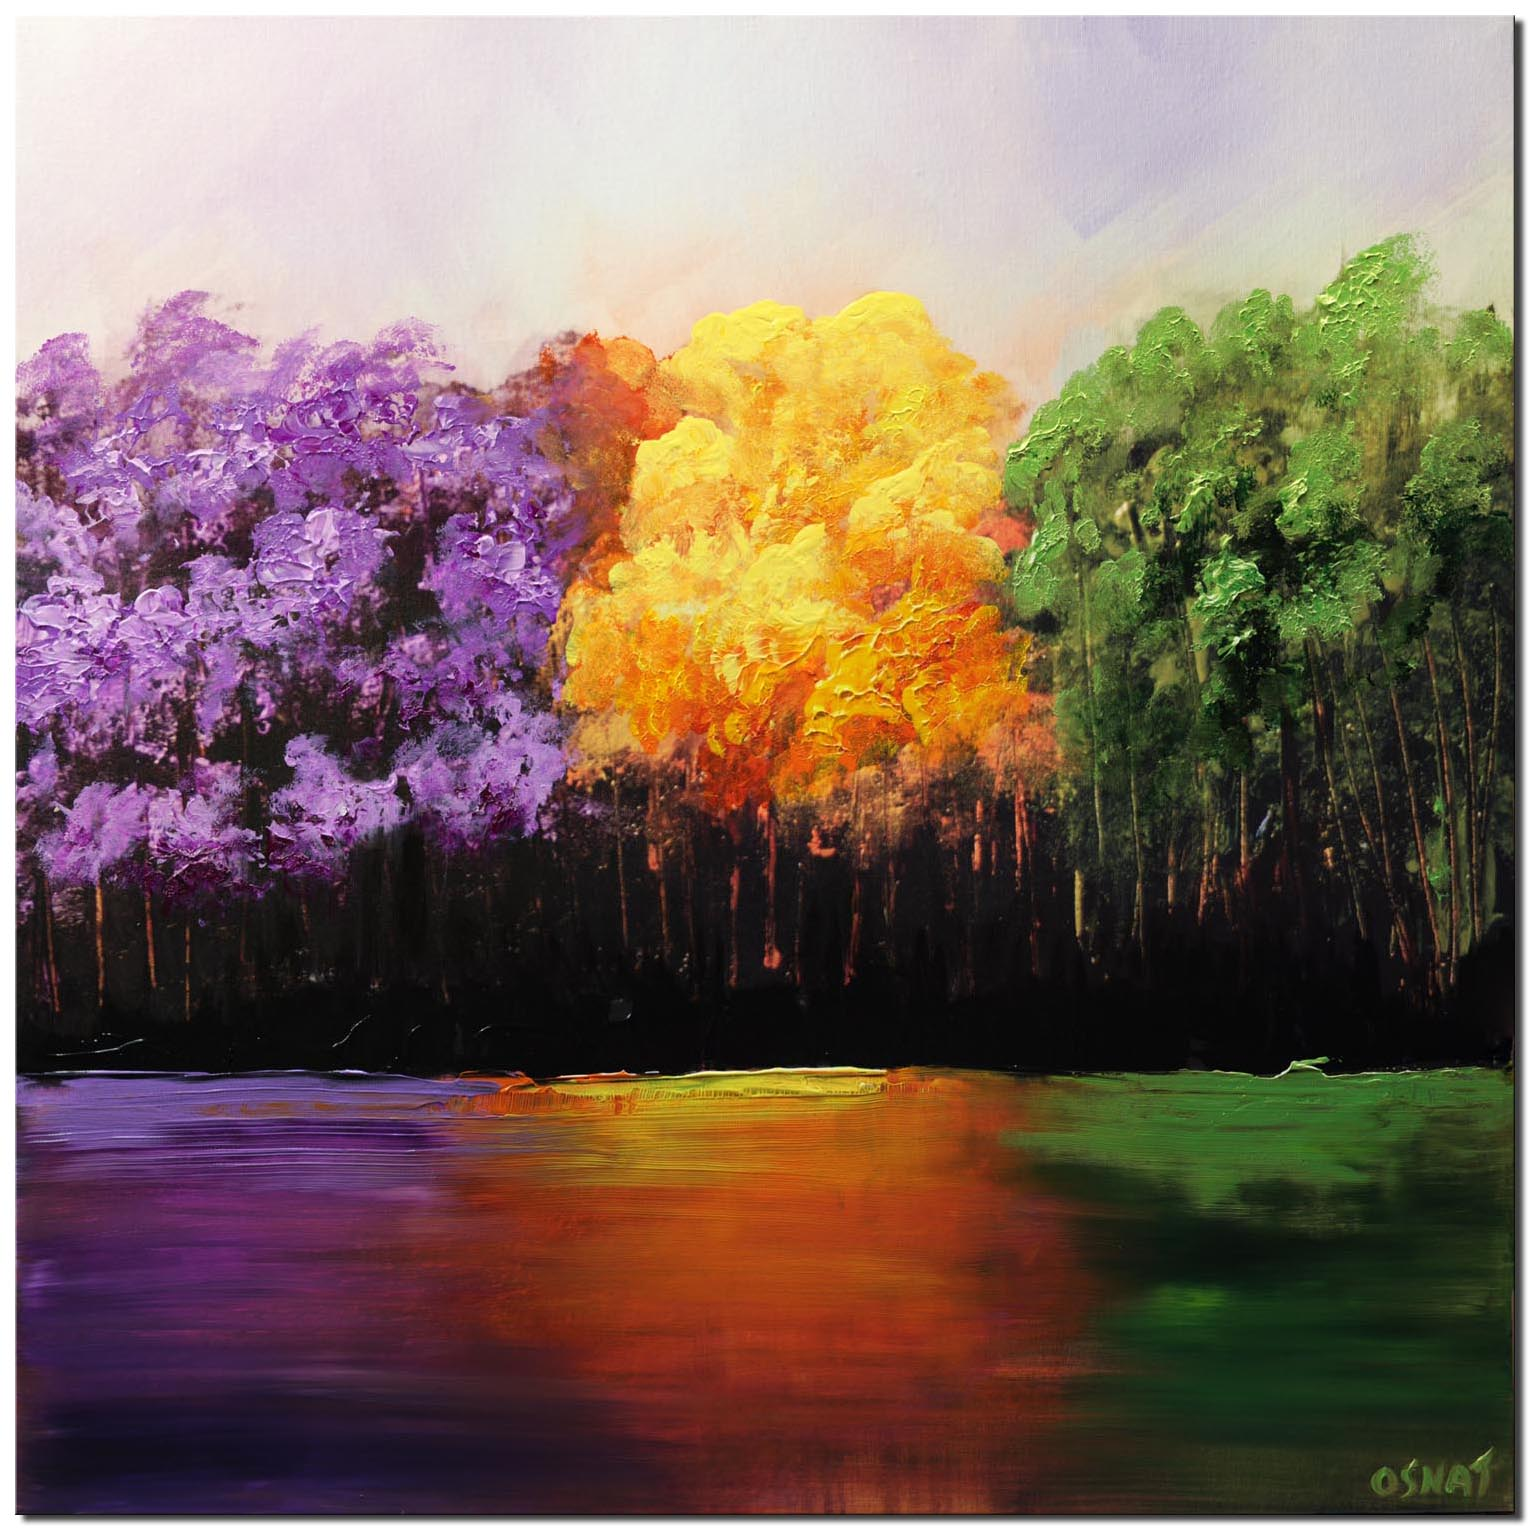 forest reflection in river purple orange green trees